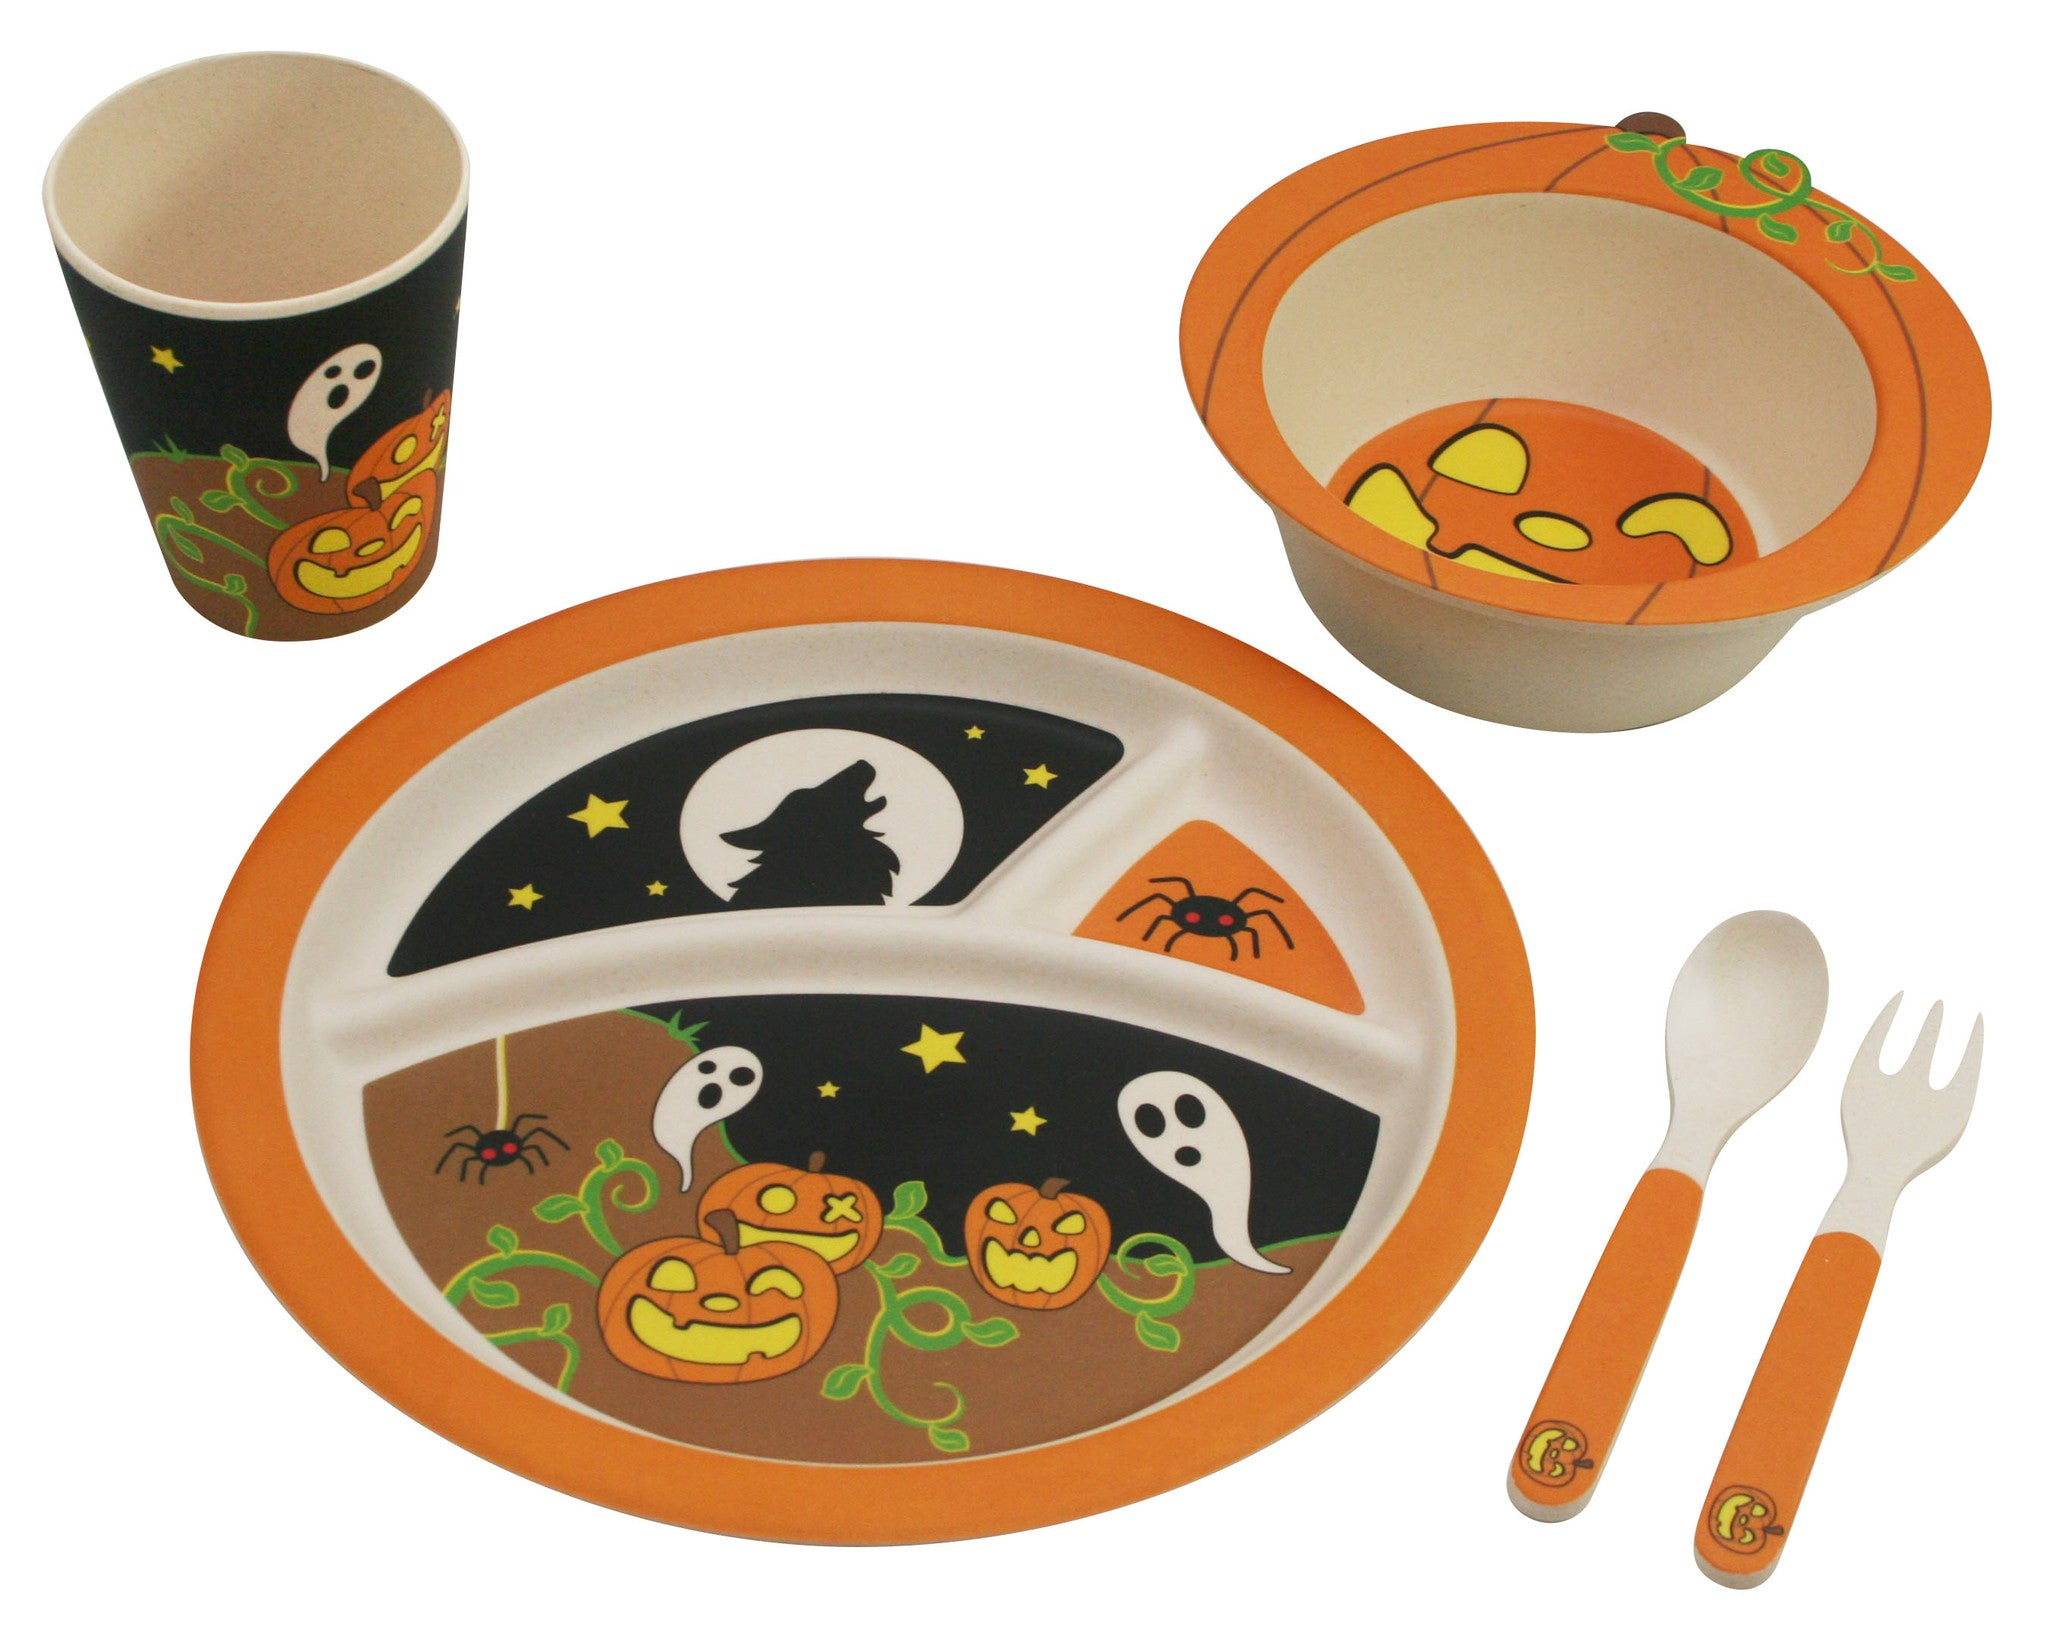 Bamboo Studio Babies/Kids/Toddlers Bamboo Dinnerware Set Halloween Pumpkin 5 Piece  sc 1 st  Paperless Kitchen & Halloween Pumpkin Dinnerware Set for Kids from Bamboo Studio 5 ...